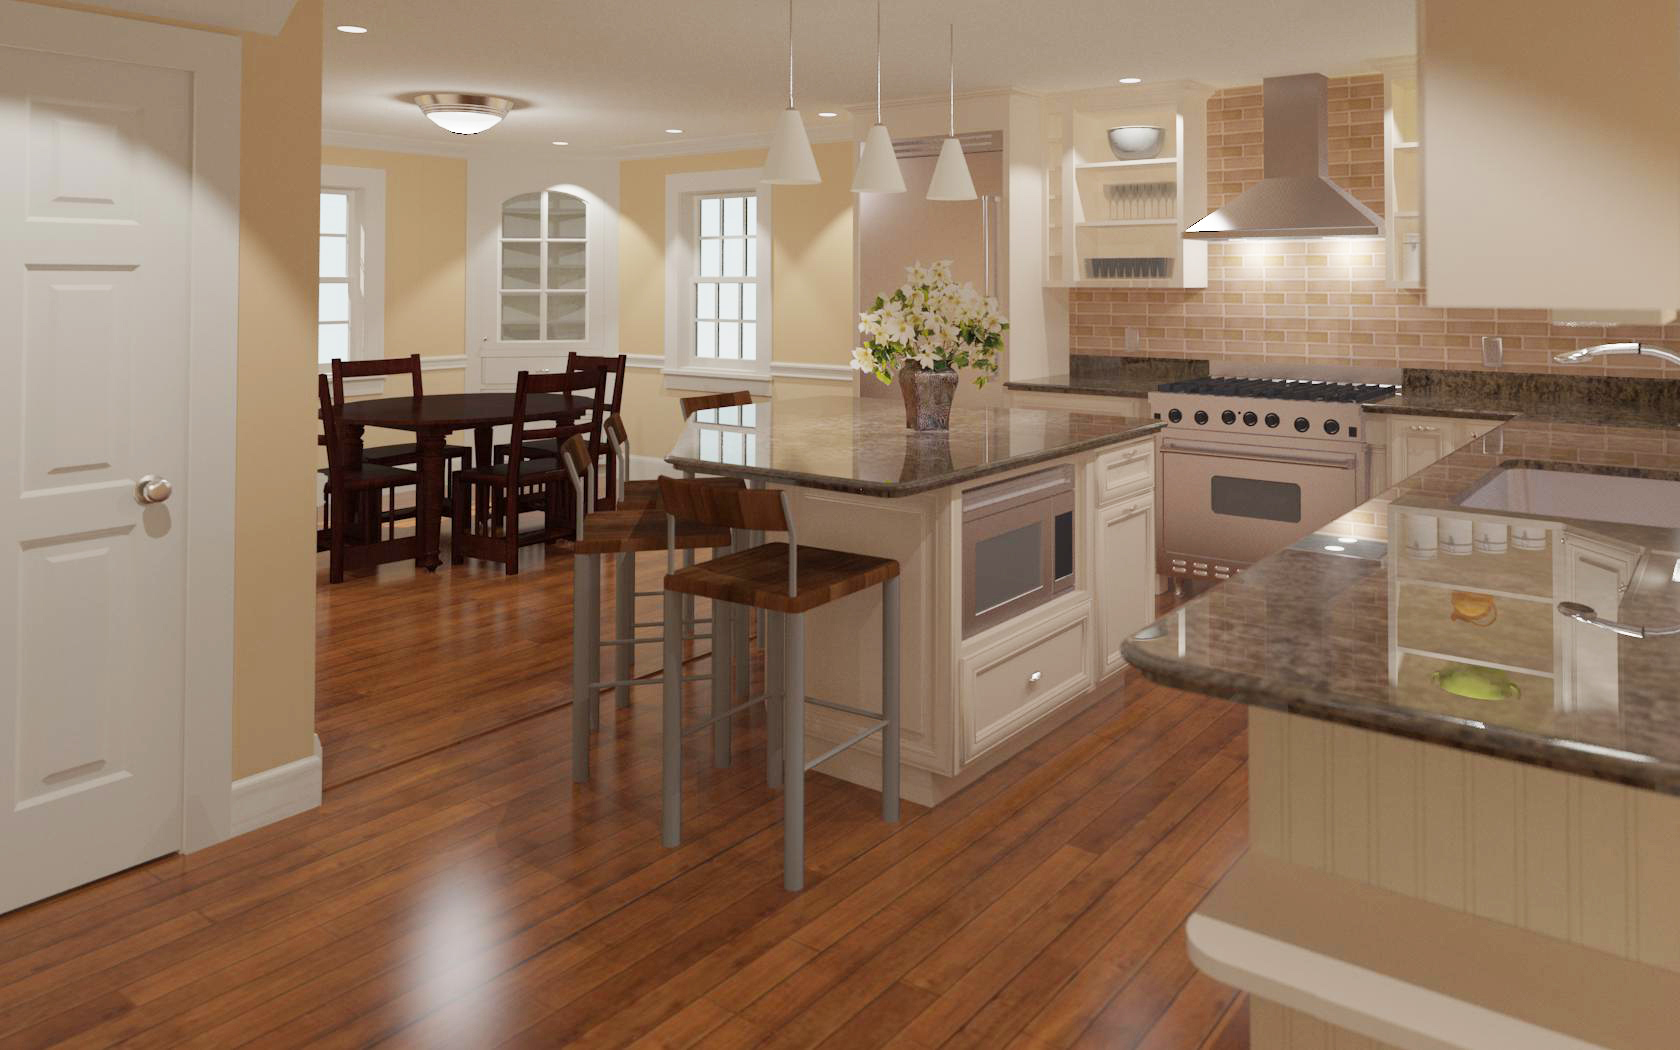 traditional kitchen 3d renderinghomedesignconsultingcom - Home Design Consultant